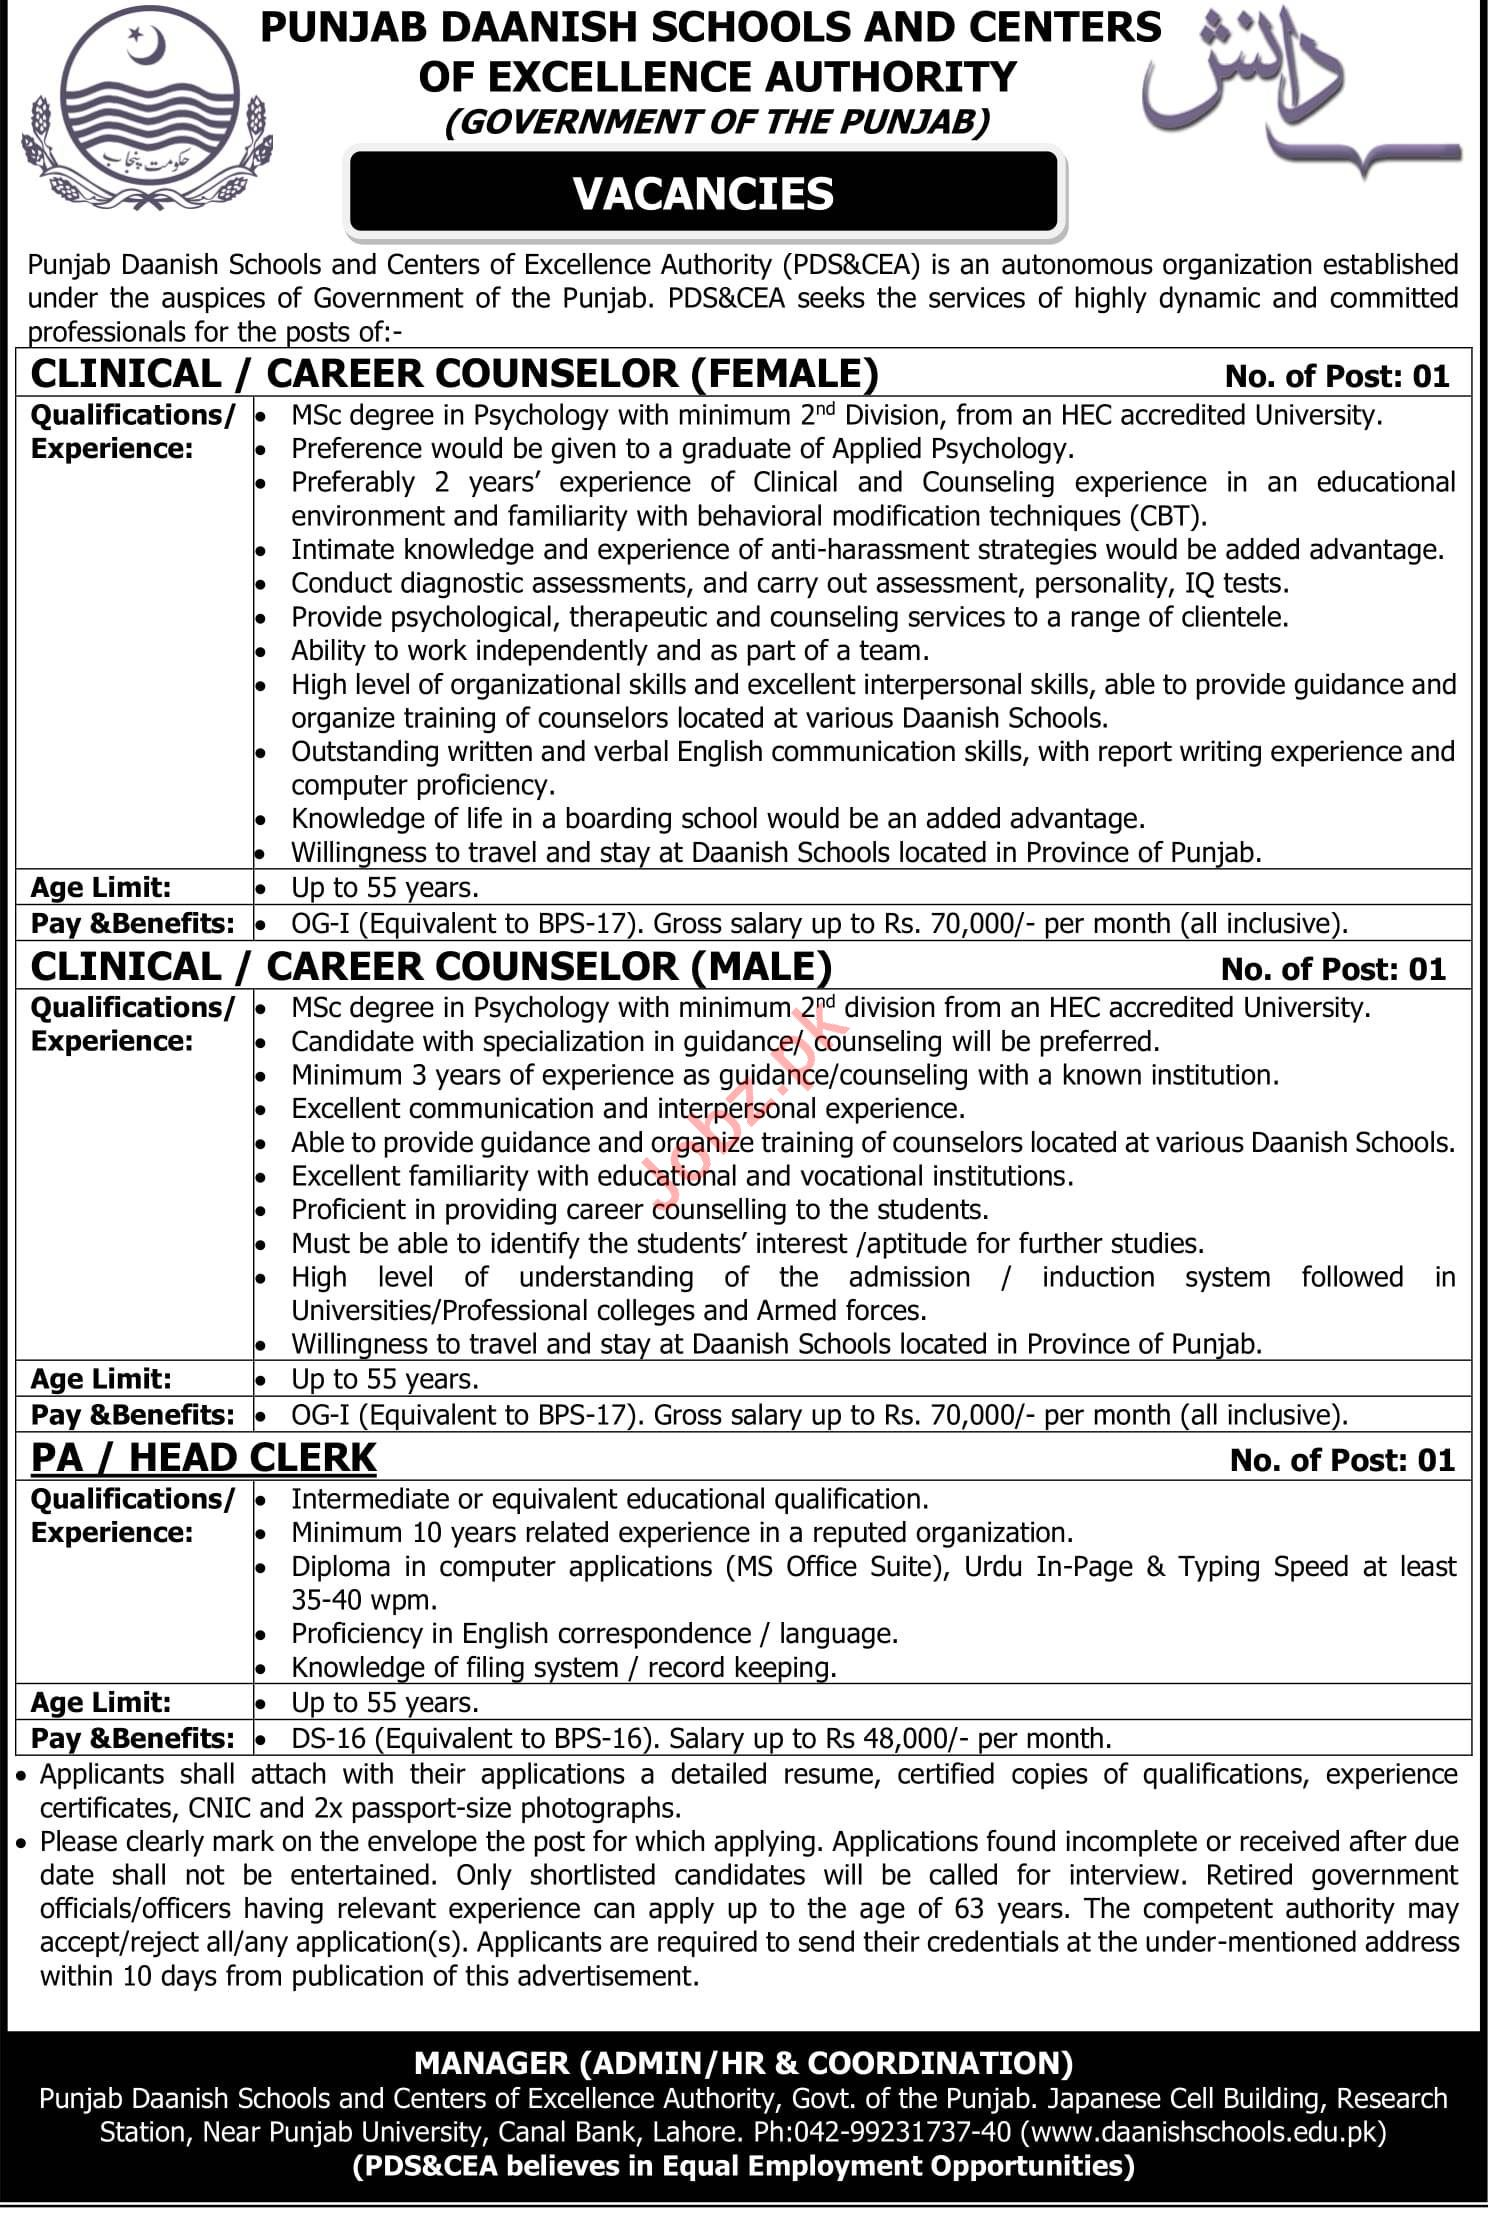 PDS & CEA Lahore Jobs 2018 for Counselor & PA/ Head Clerk